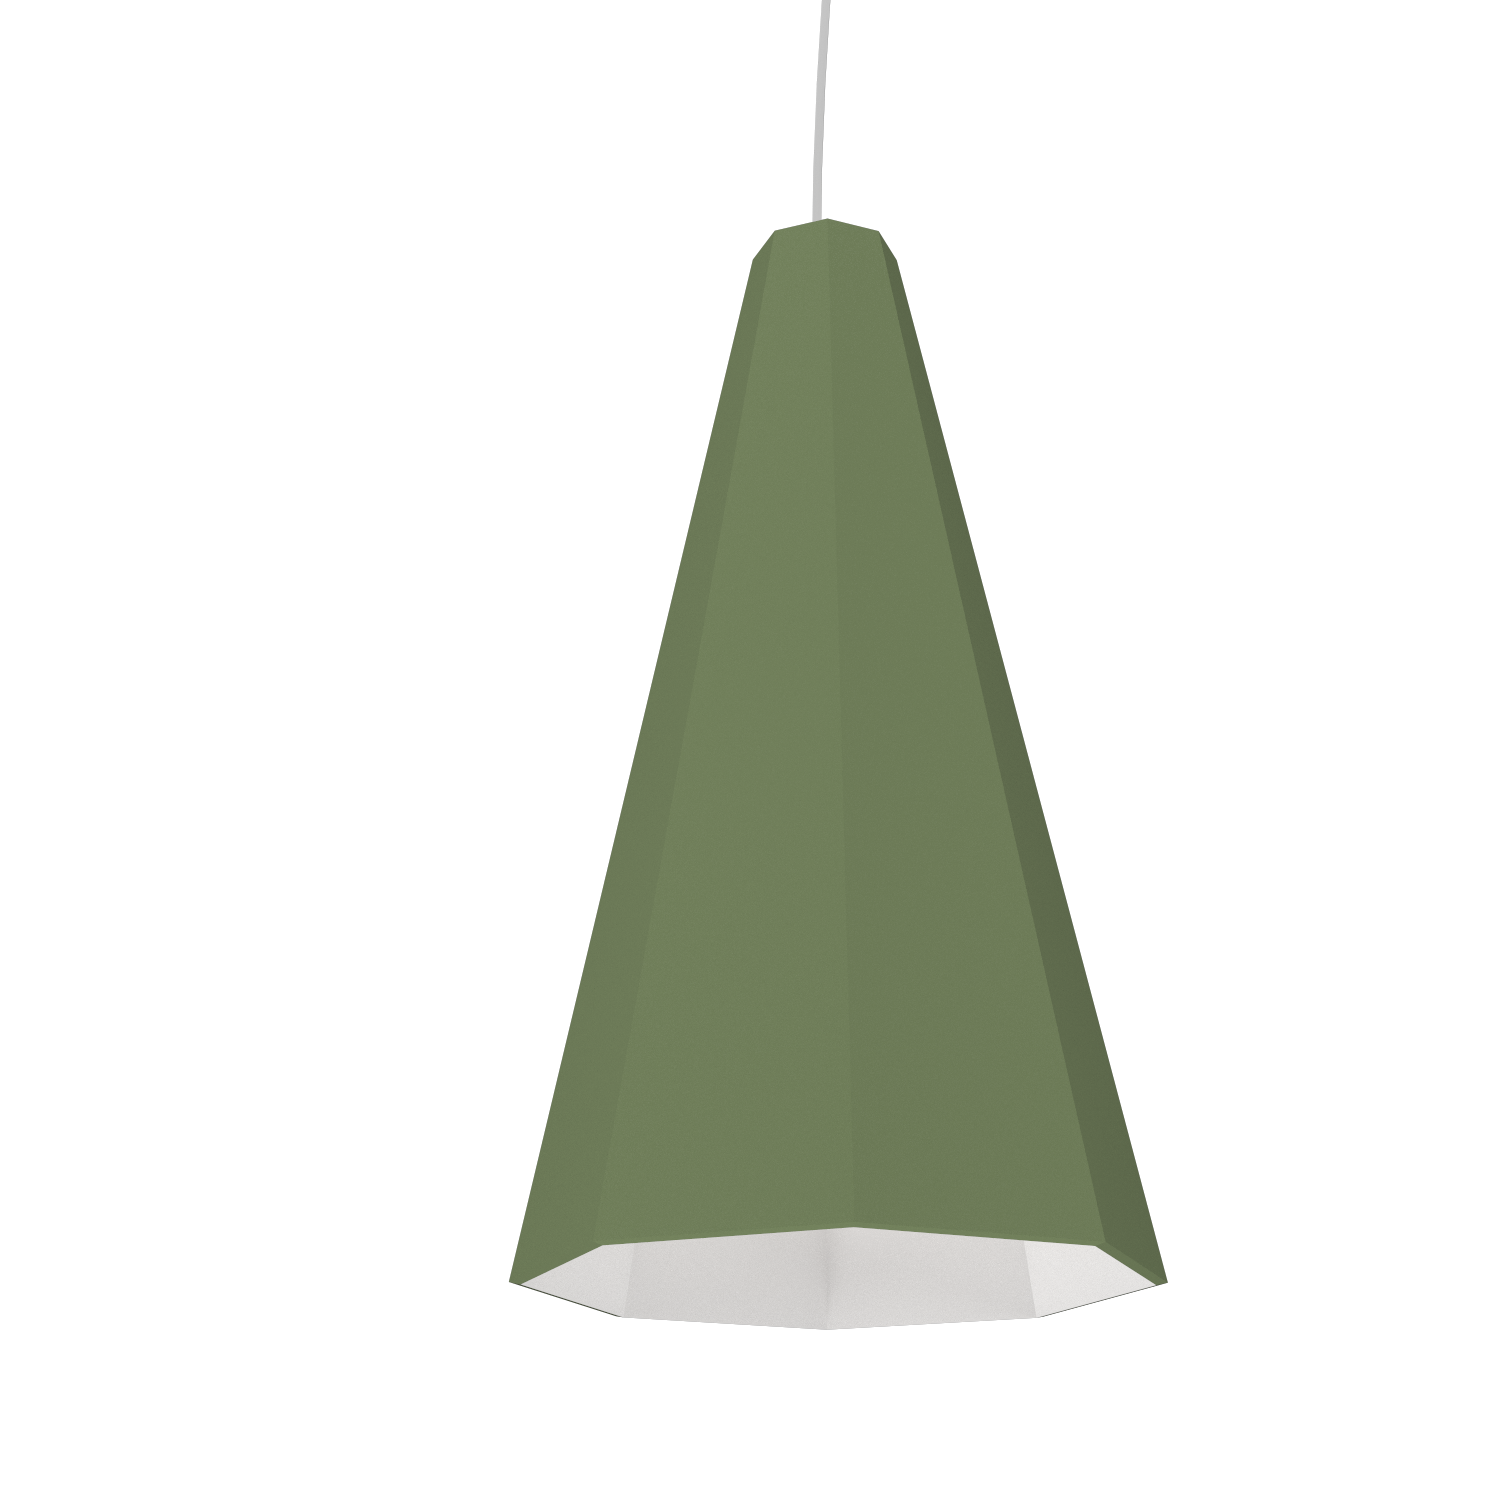 Pendant Lamp Accord Facetado 1231 - Facetada Line Accord Lighting | 30. Olive Green